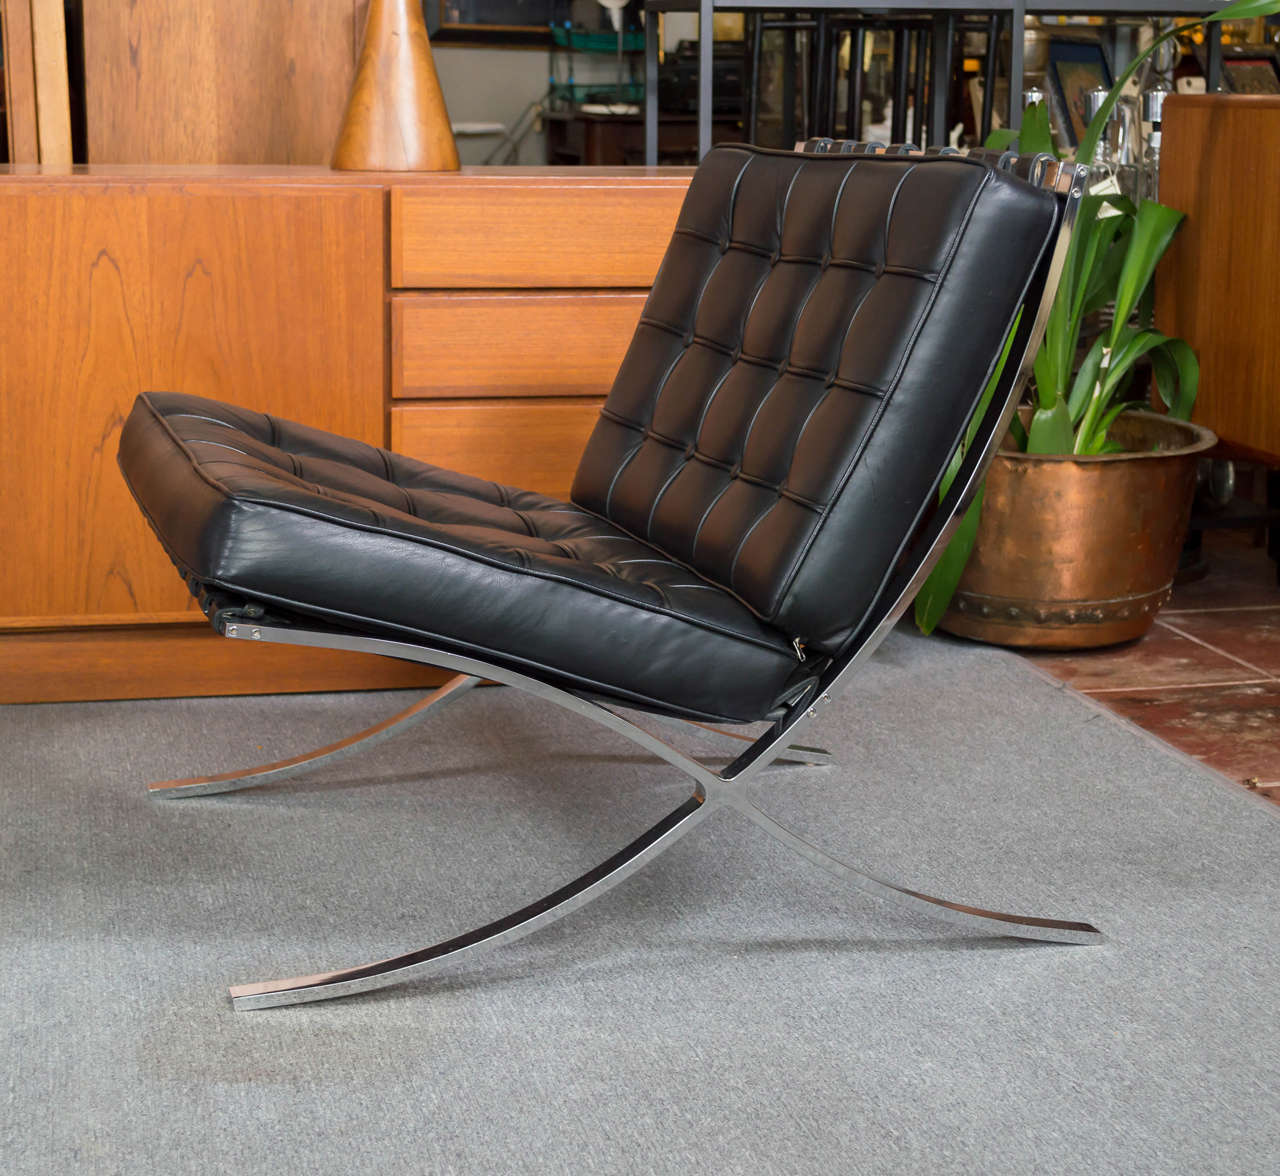 Barcelona style chairs - Vintage Pair Of Mies Van Der Rohe Barcelona Style Chairs Saturday Sale